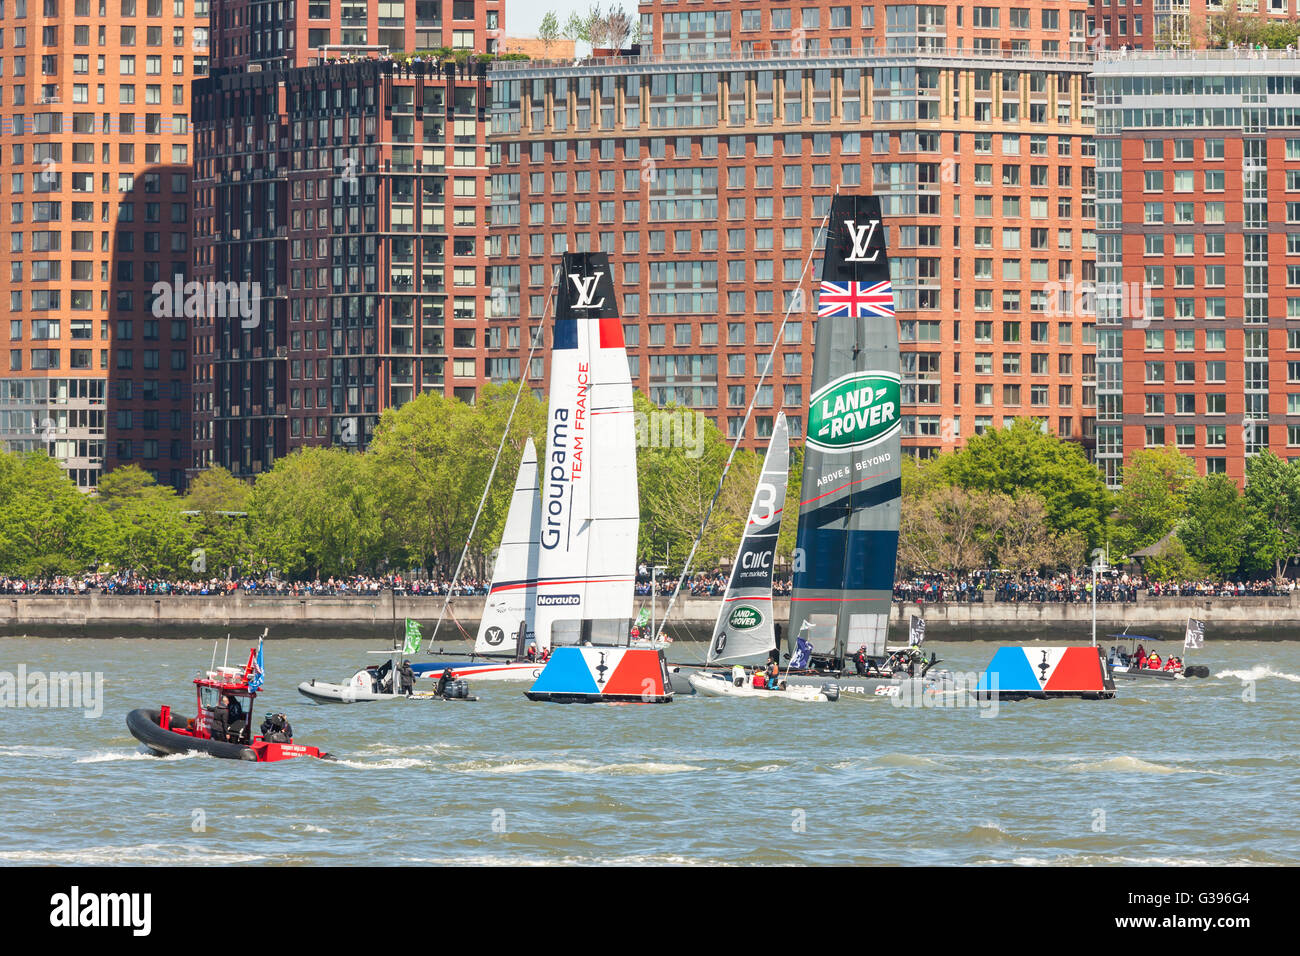 America's Cup World Series teams France and UK catamarans race on the Hudson River course near Brookfield Place. - Stock Image